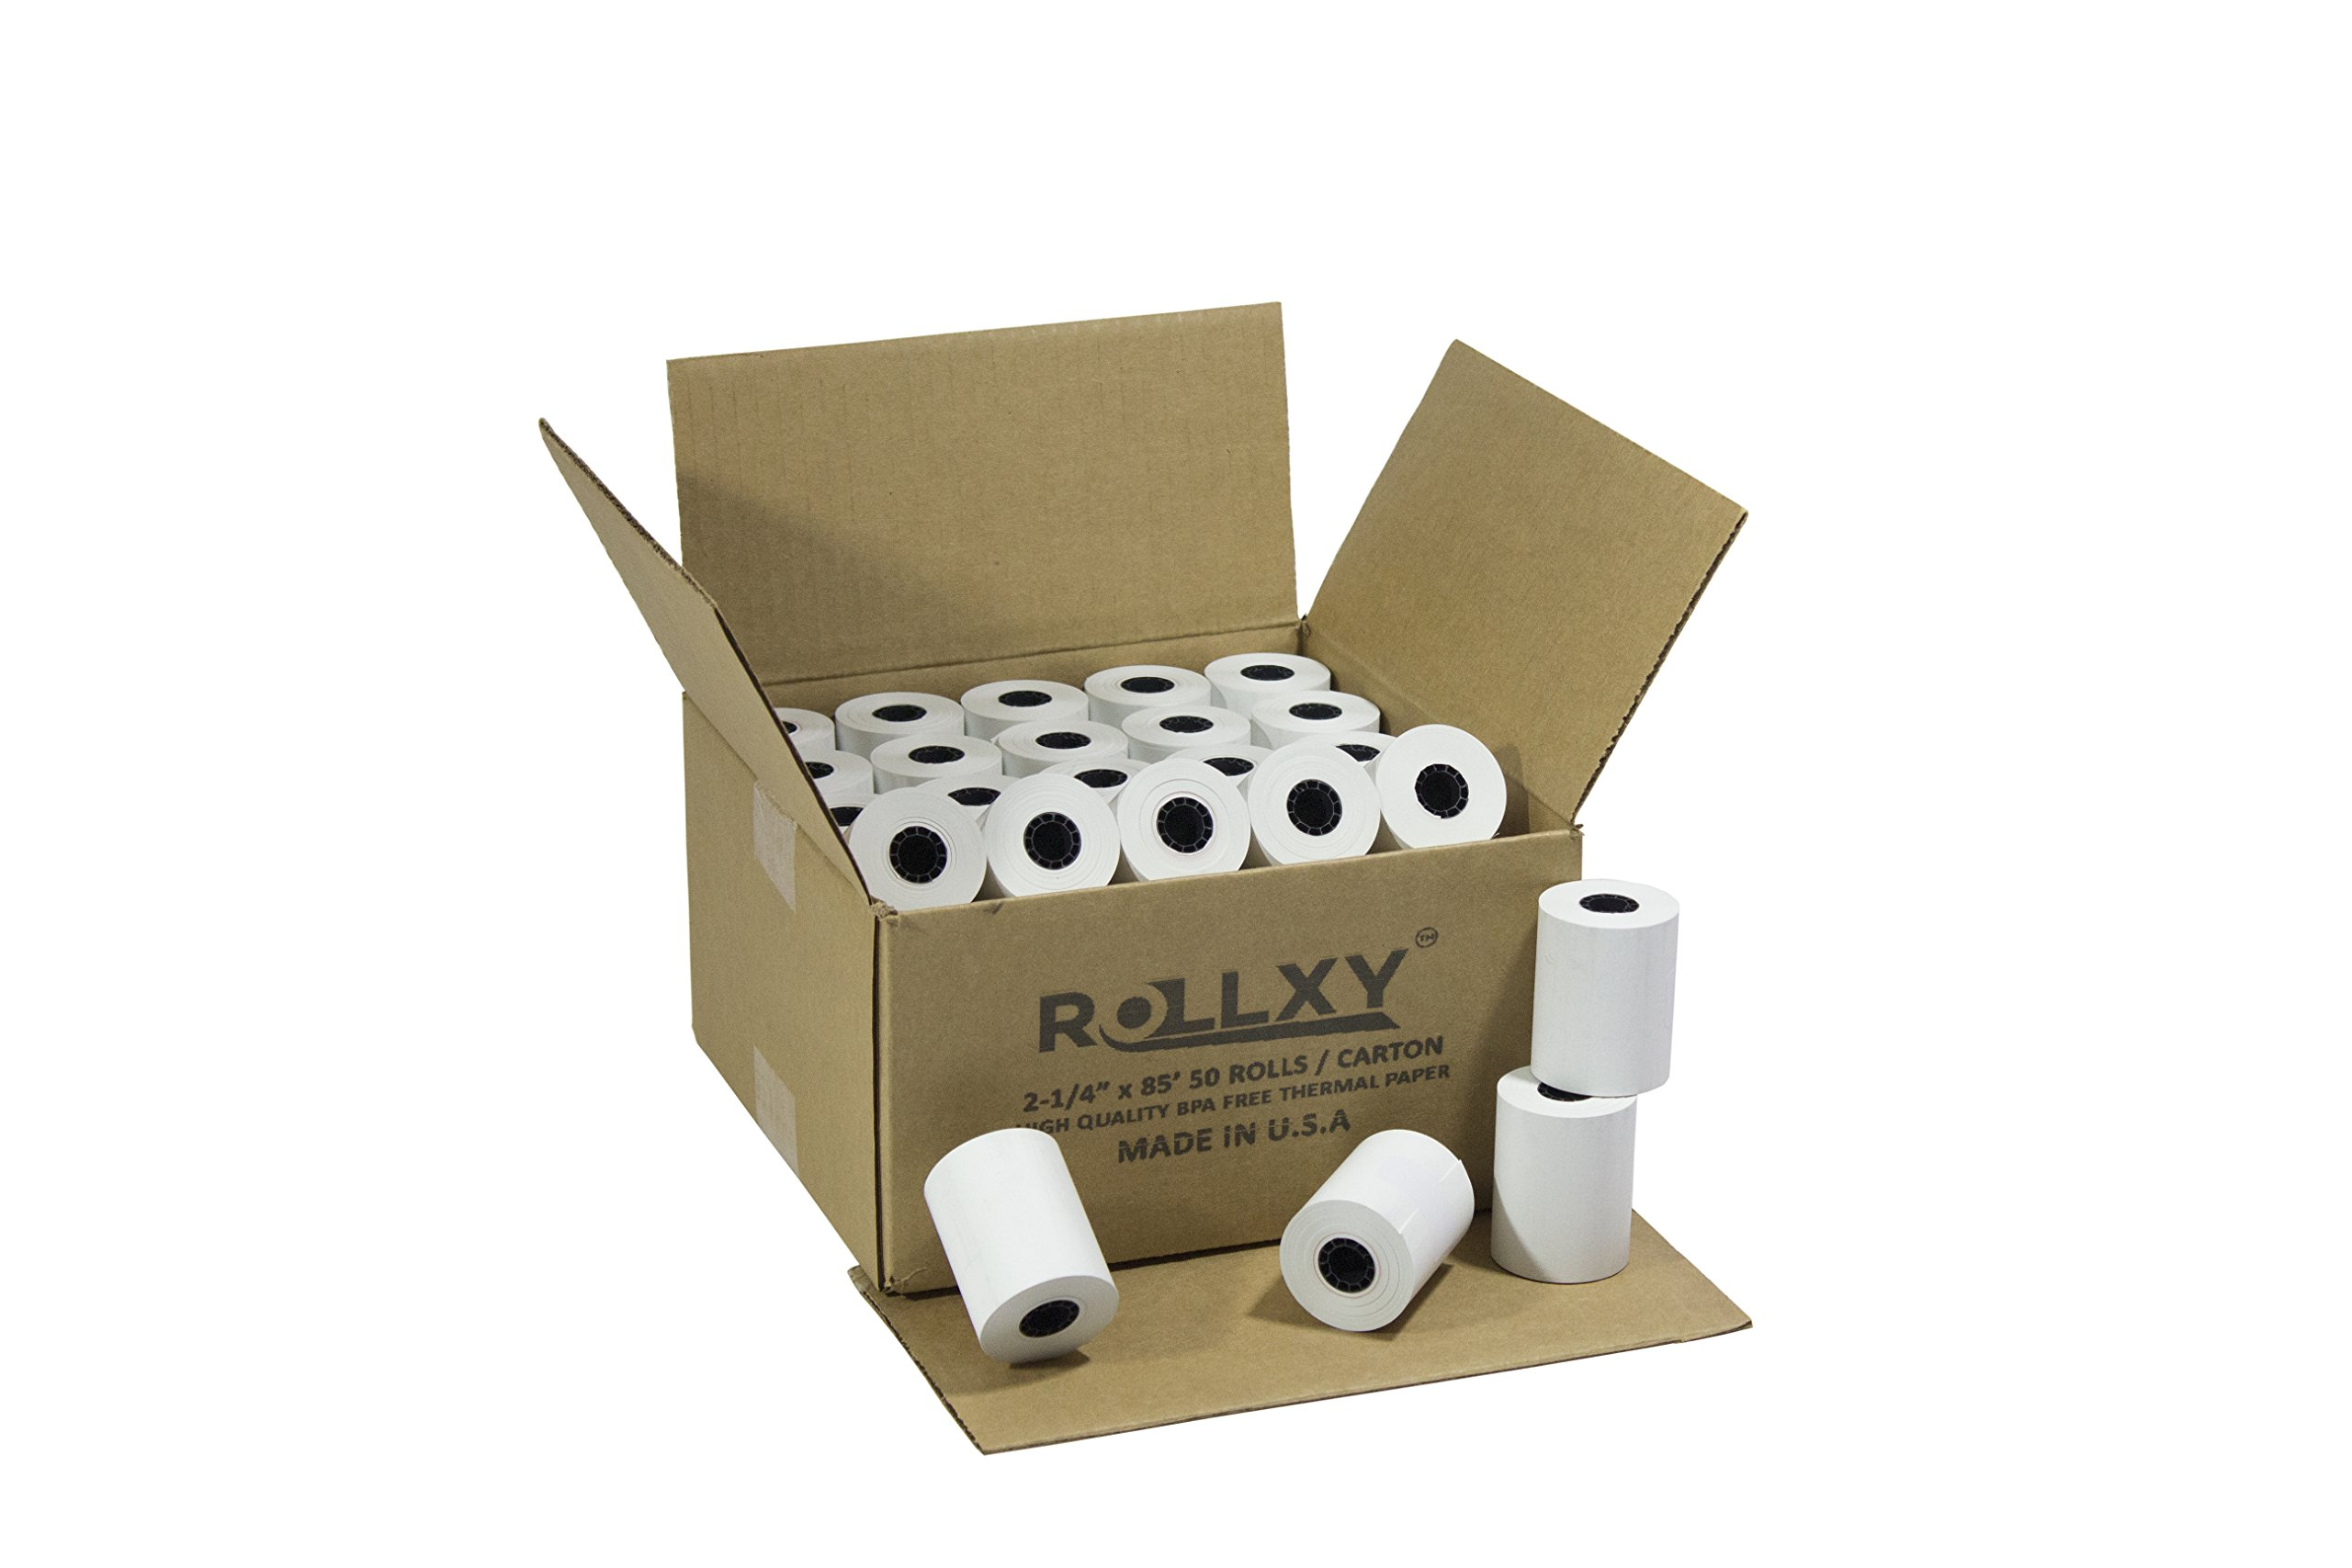 (50 Rolls) 2 1/4 x 85' First Data FD130 FD50 FD400 FD55 FD100Ti Thermal ROLLXY Paper (50 Rolls) by PosPaperRoll